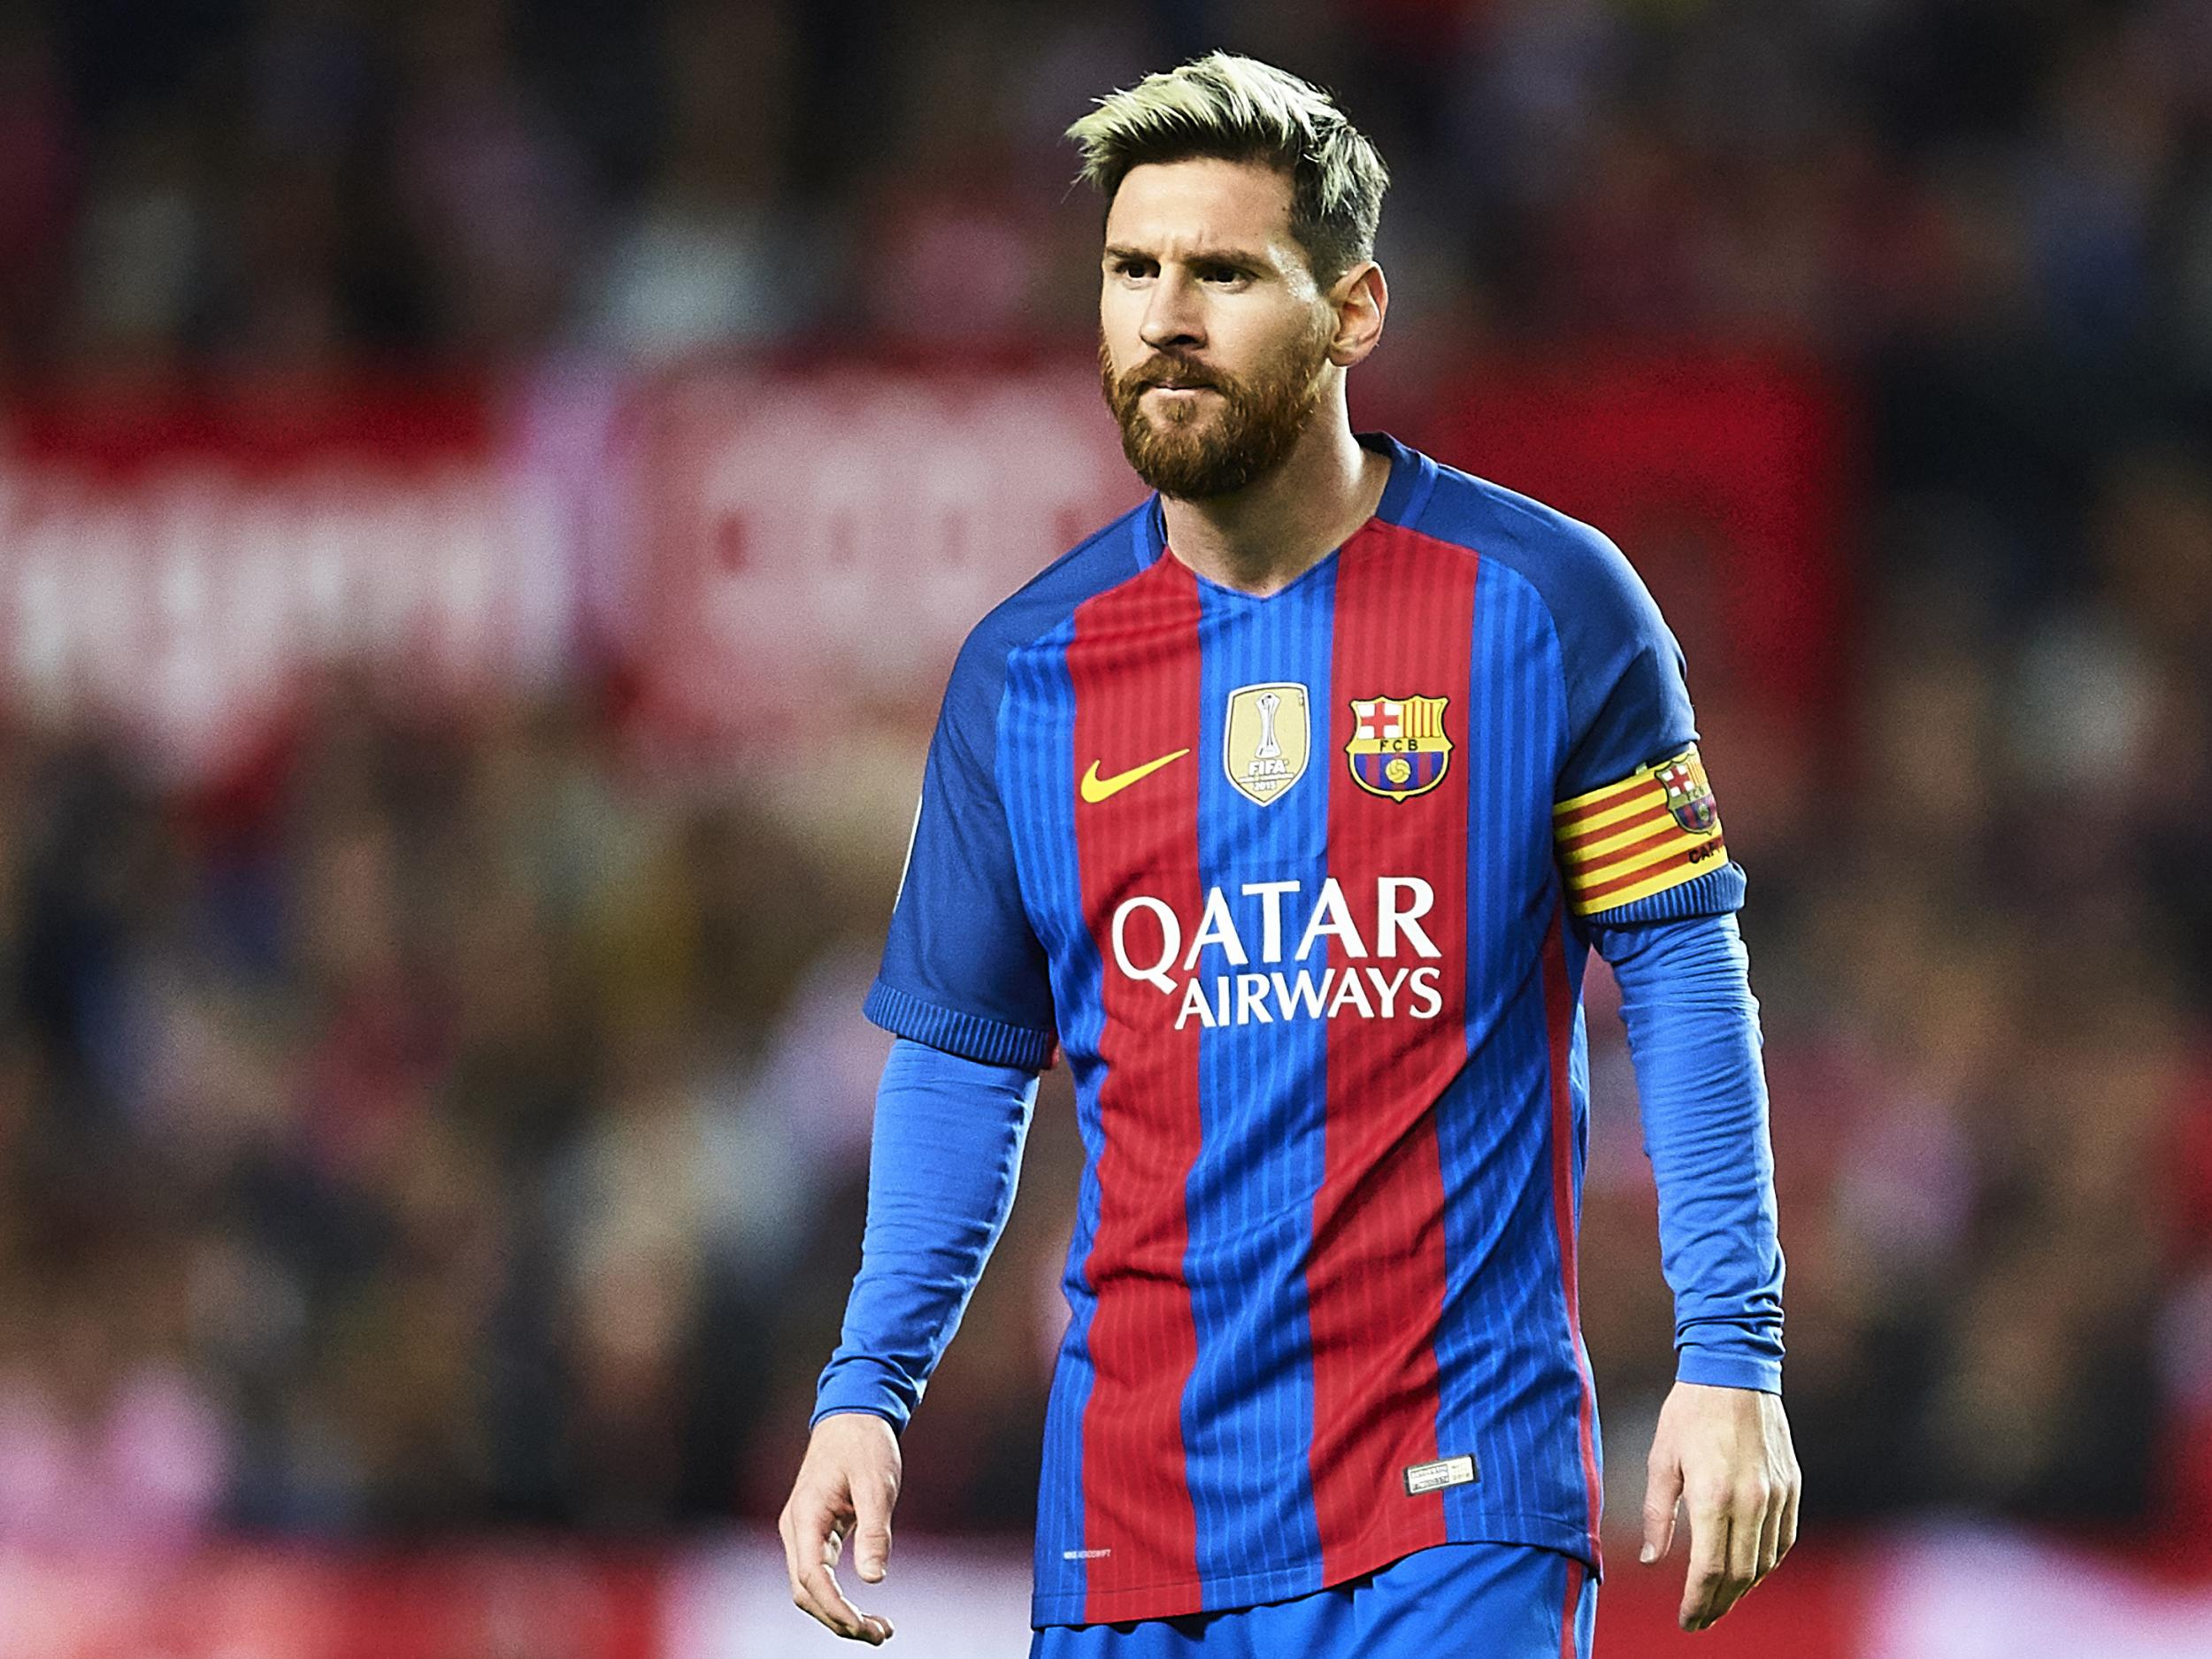 Manchester United transfer news: Club accept defeat to City in Lionel Messi chase